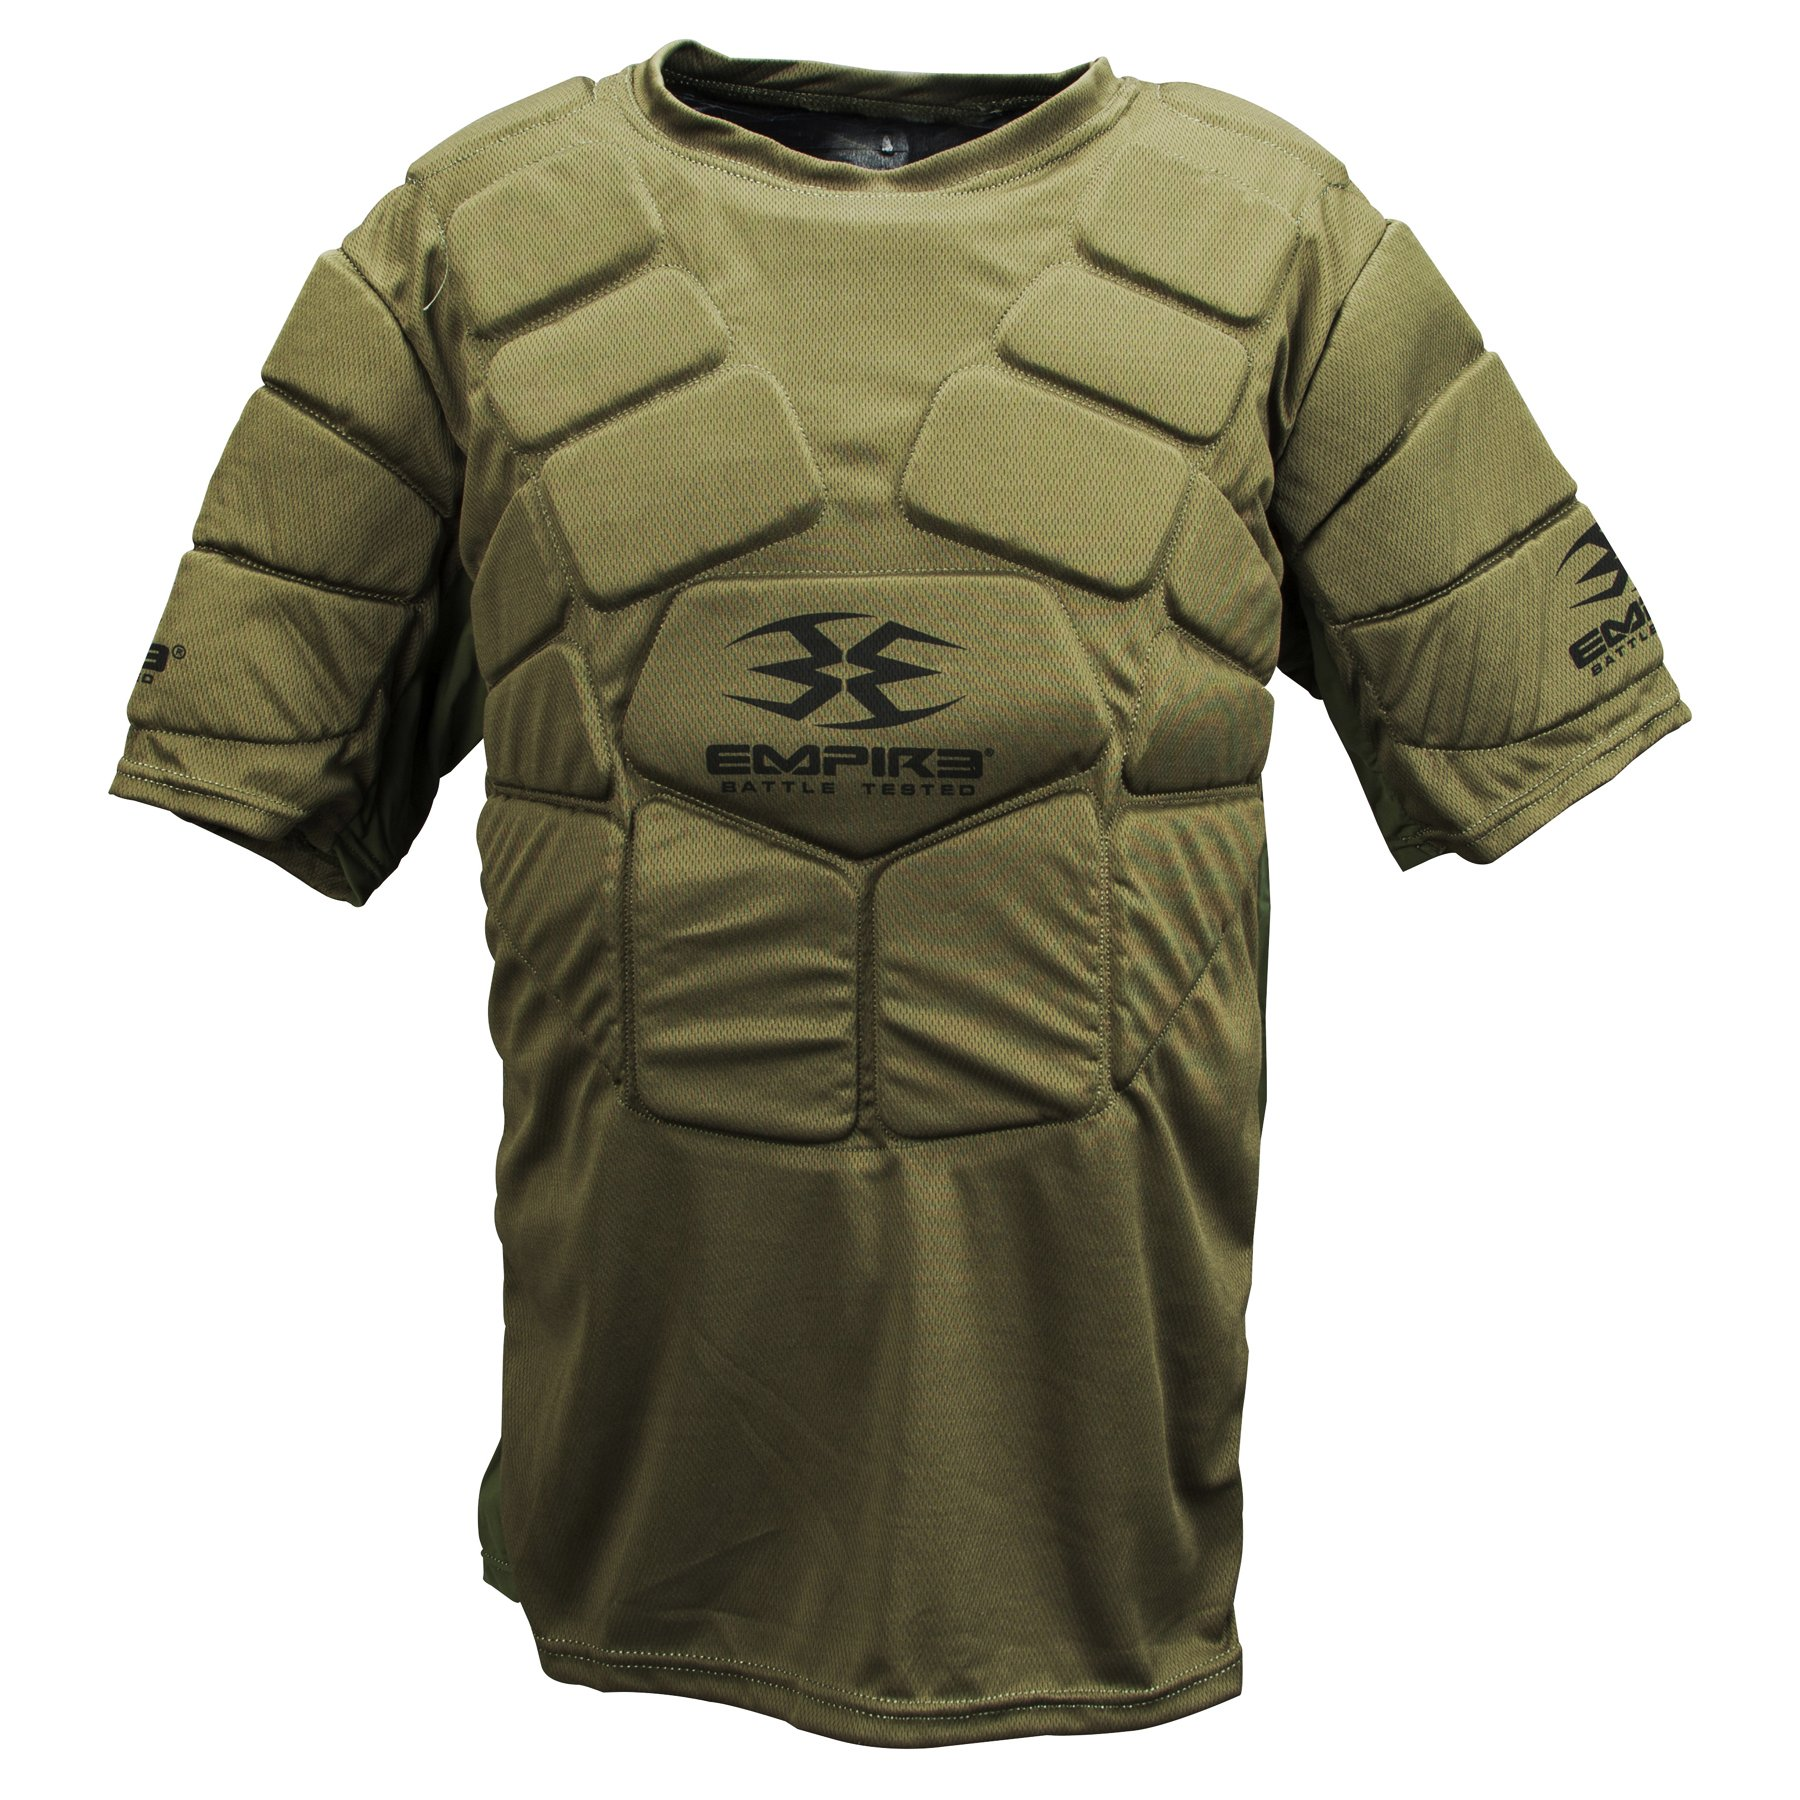 Empire Paintball BT Chest Protector, Olive, Small/Medium by Empire Paintball